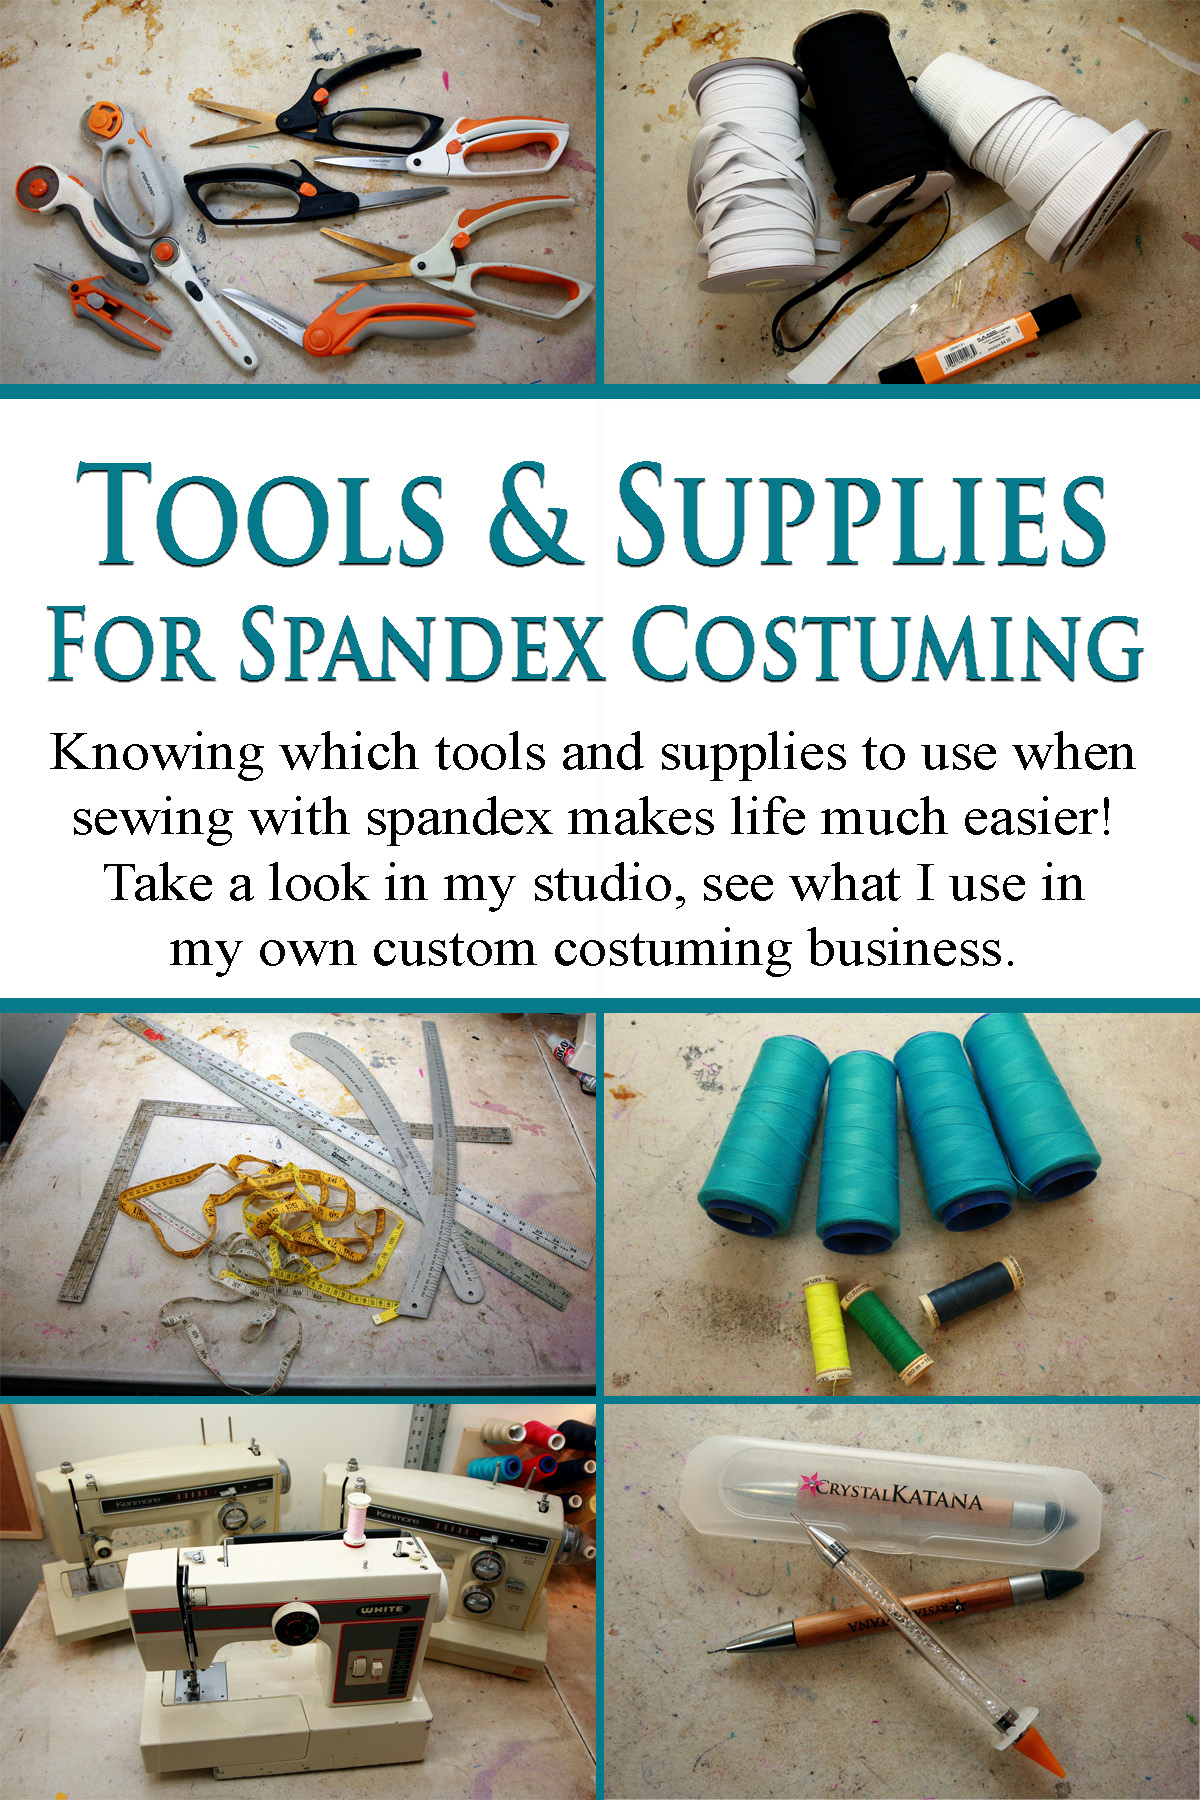 A compilation photo showing 6 images of various tools and supplies needed for sewing spandex.  Included are thread, rulers, sewing machines,elastic, and scissors.